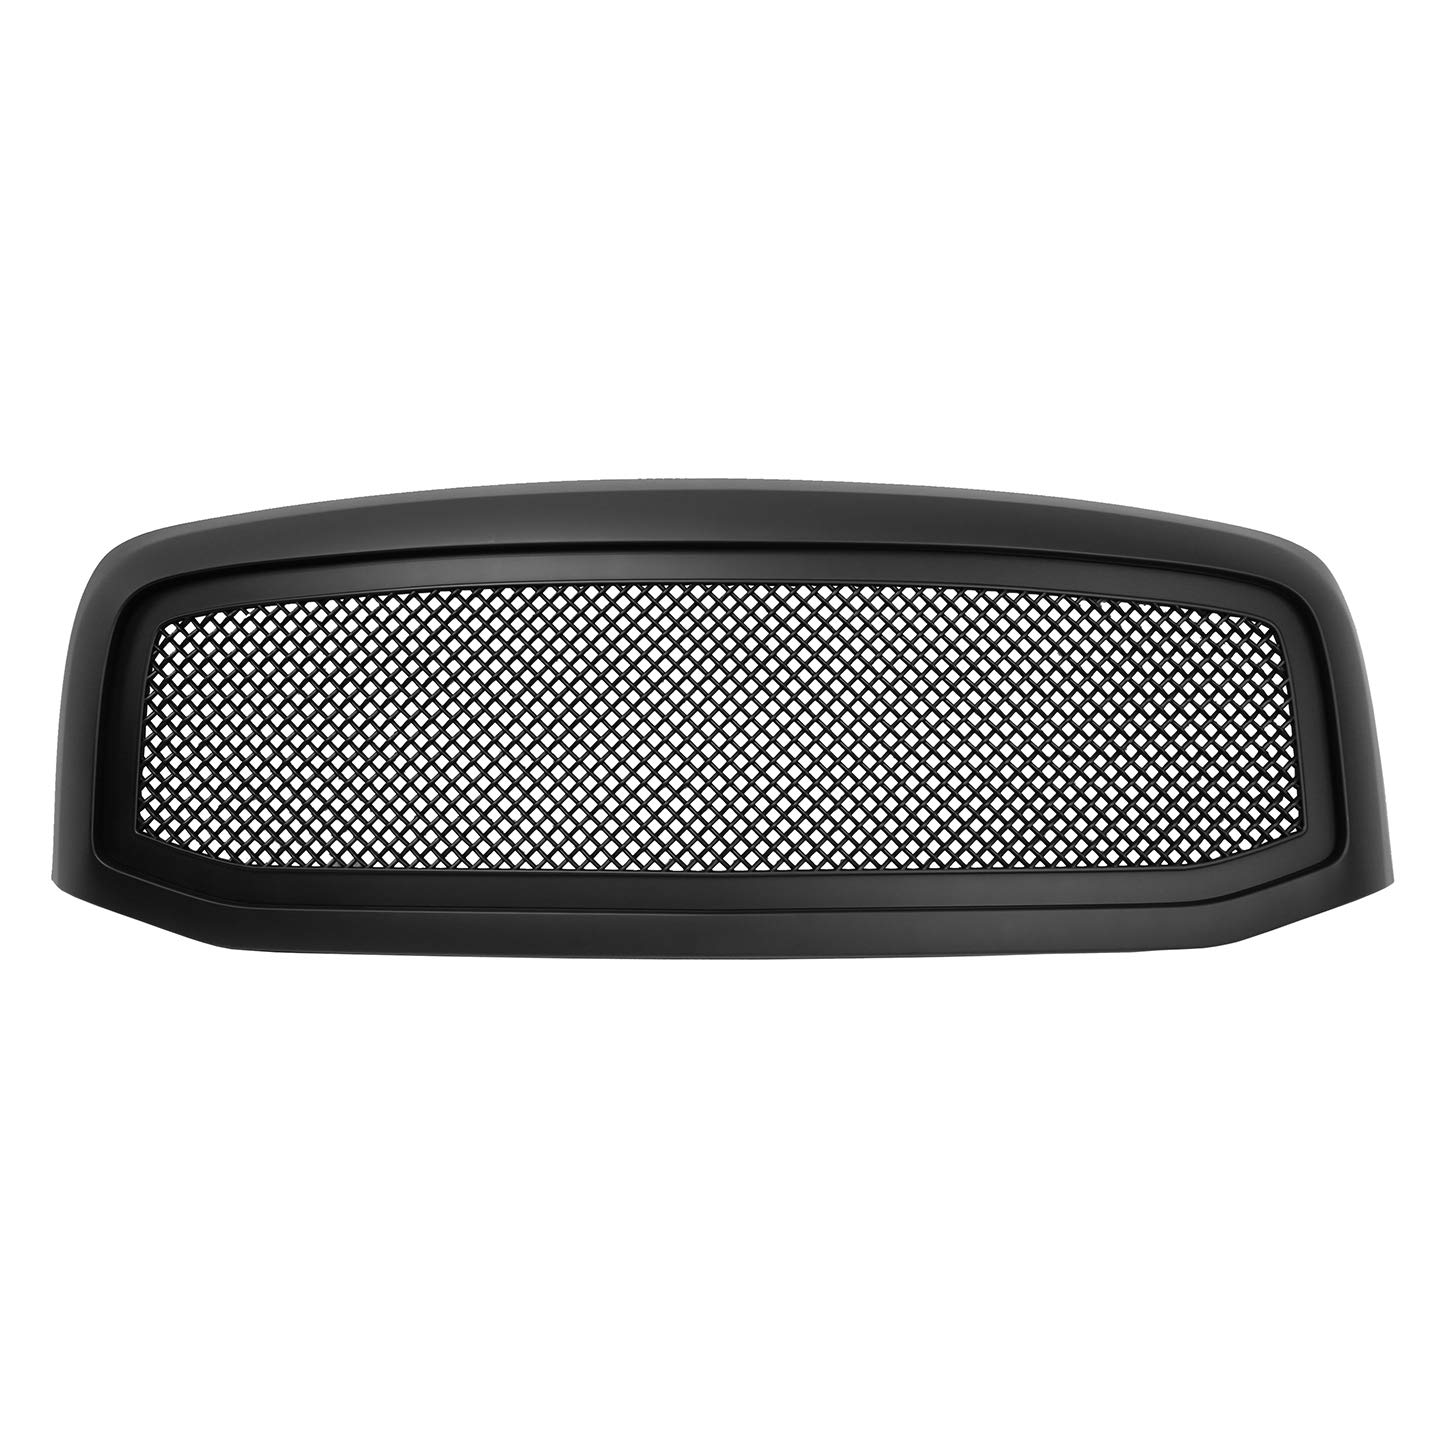 Matte Black Grill Grilles with Mesh Paragon Front Grille for 2006-08 Dodge Ram 1500//2500//3500